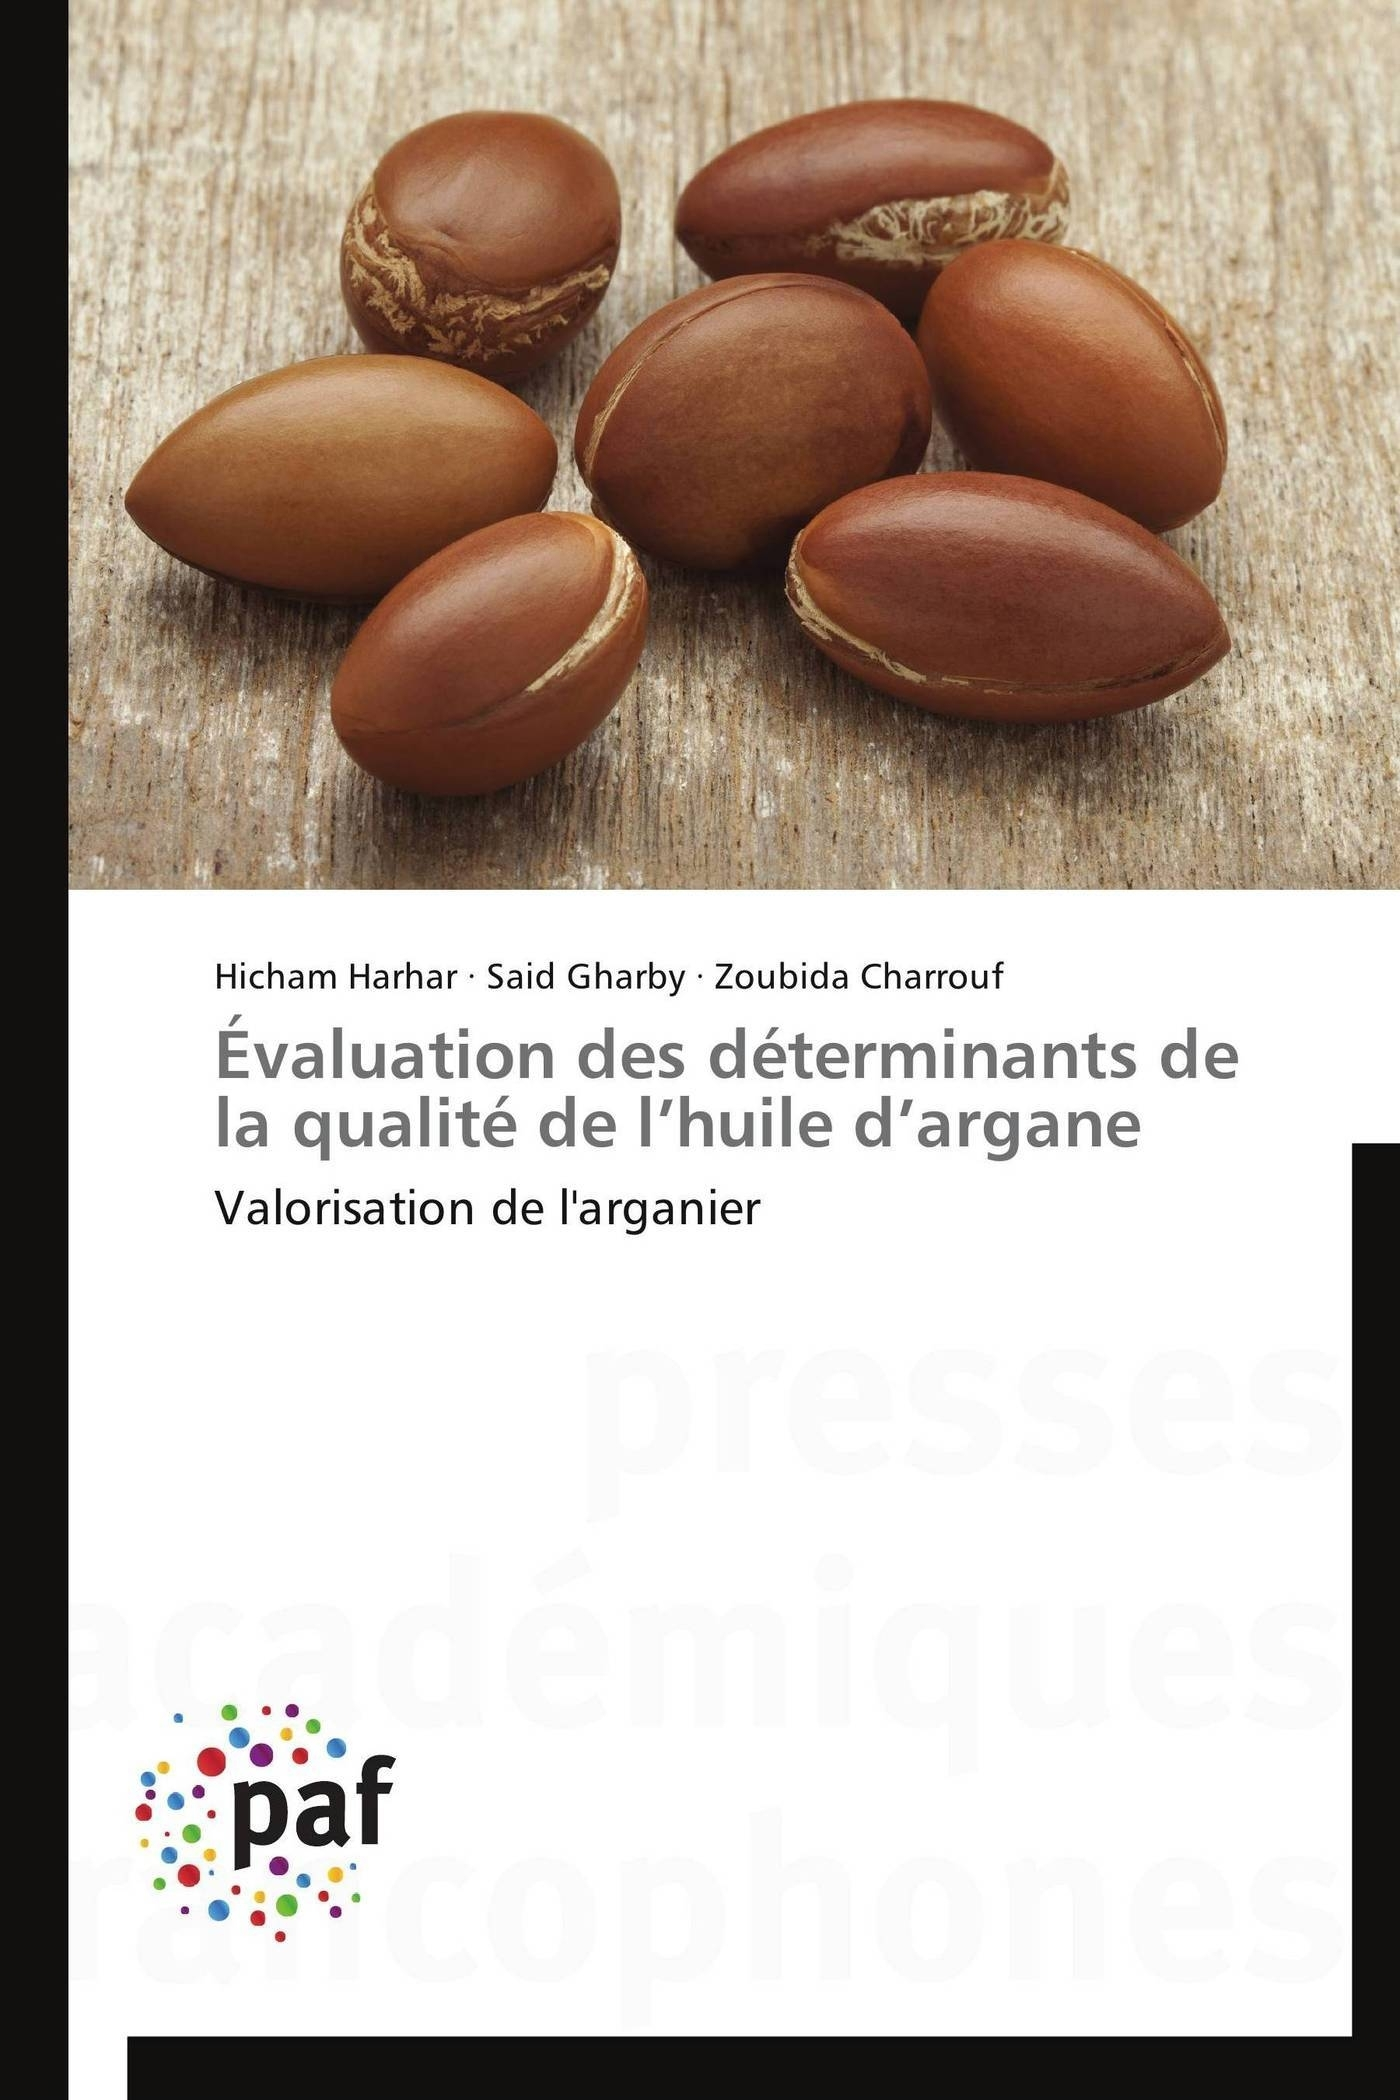 EVALUATION DES DETERMINANTS DE LA QUALITE DE L HUILE D ARGANE